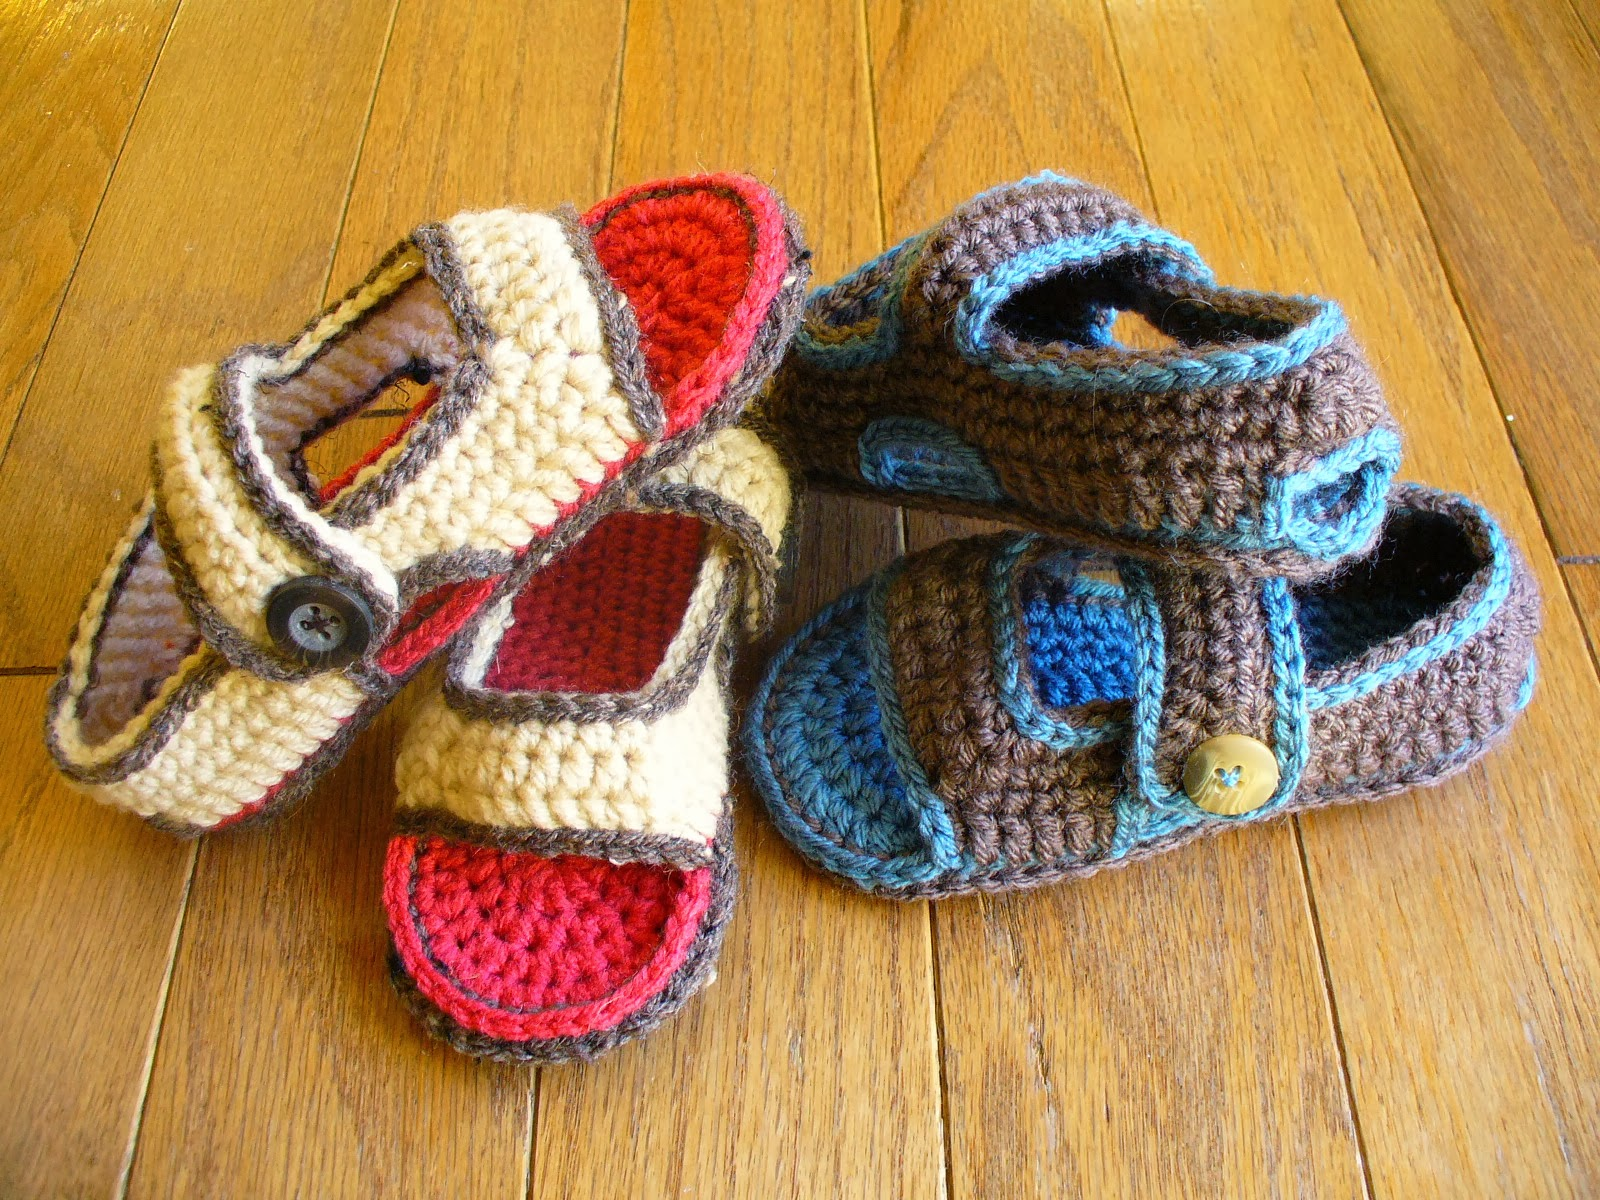 60+ Adorable and FREE Crochet Baby Sandals Patterns --> Toddler Two Strap Sandals